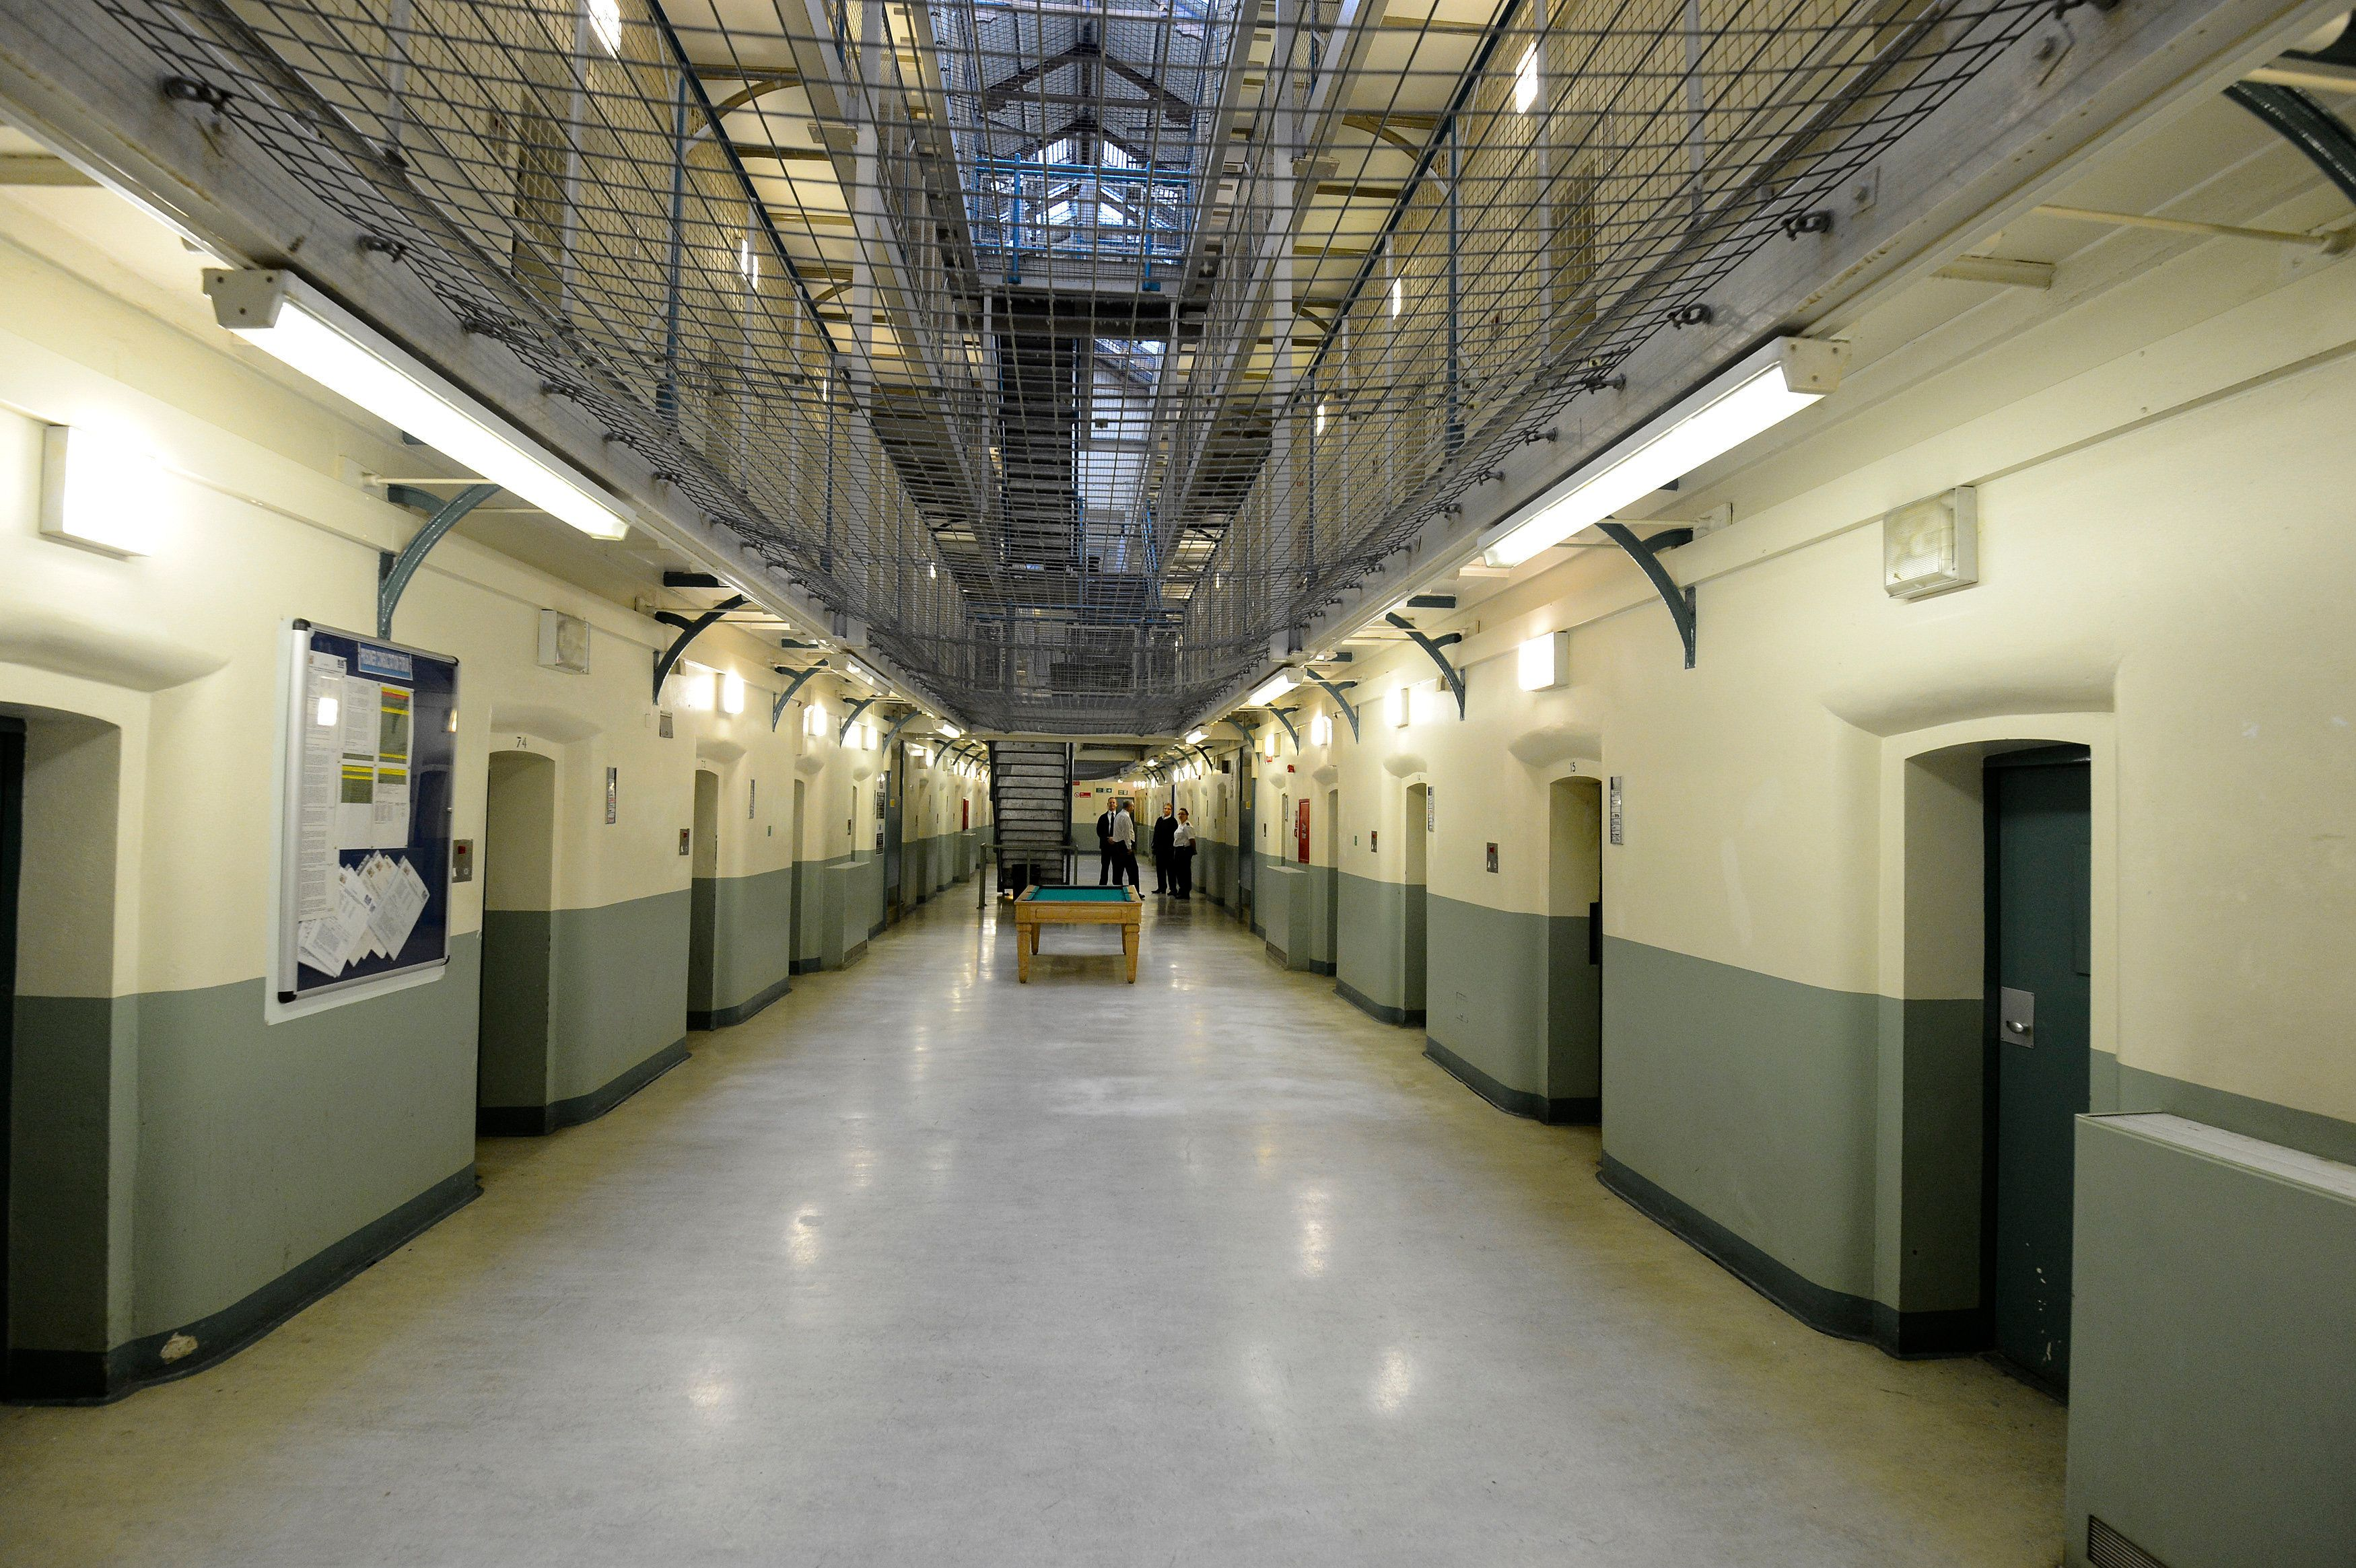 Elite Prison Squad Deployed To Jails 580 Times In Last